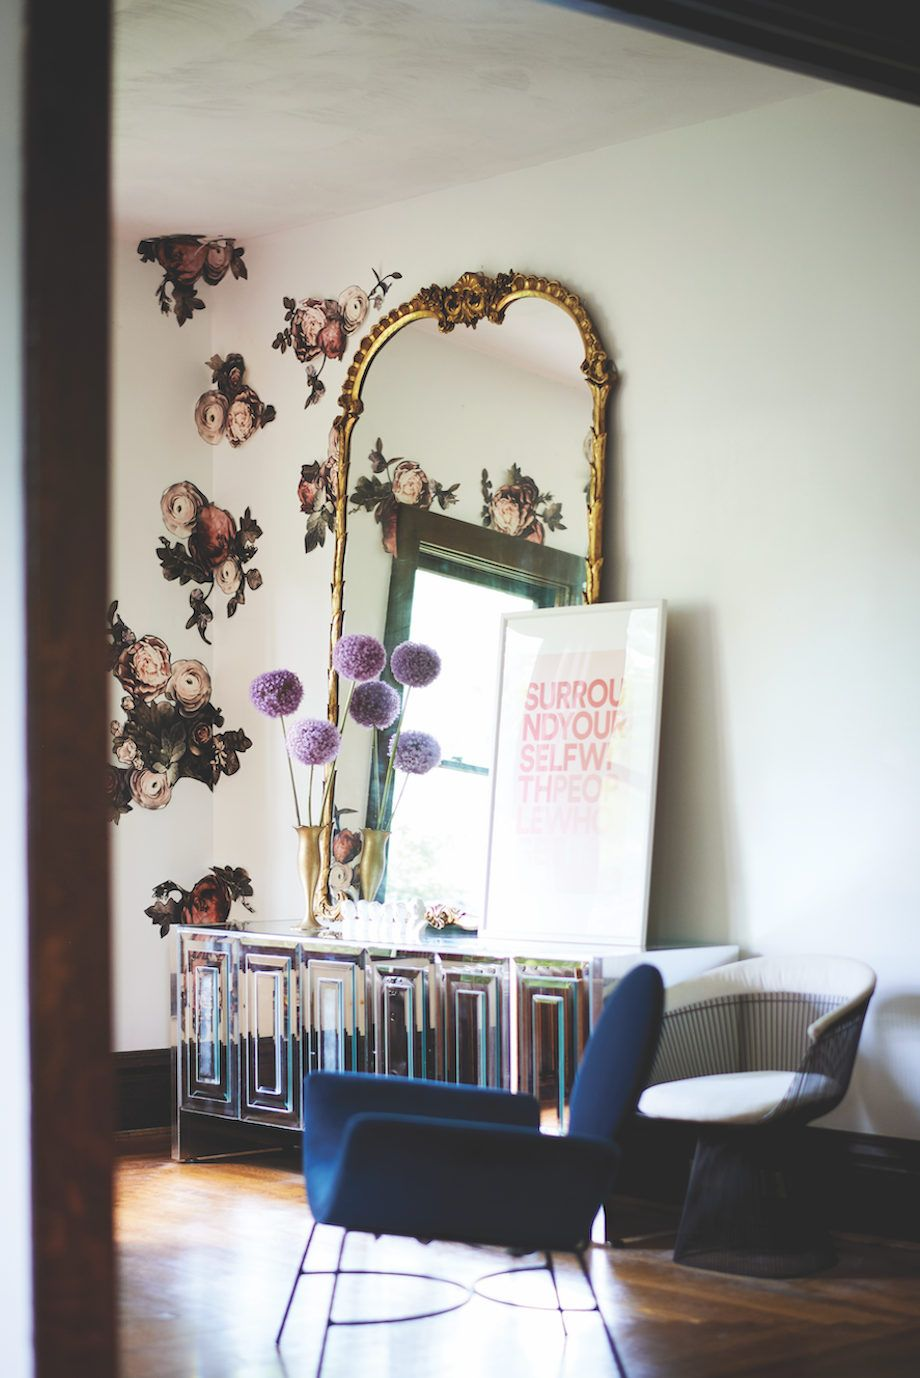 13 Creative Ways To Use Peel And Stick Wallpaper House Beautiful Magazine Best Living Room Wallpaper Room Wallpaper